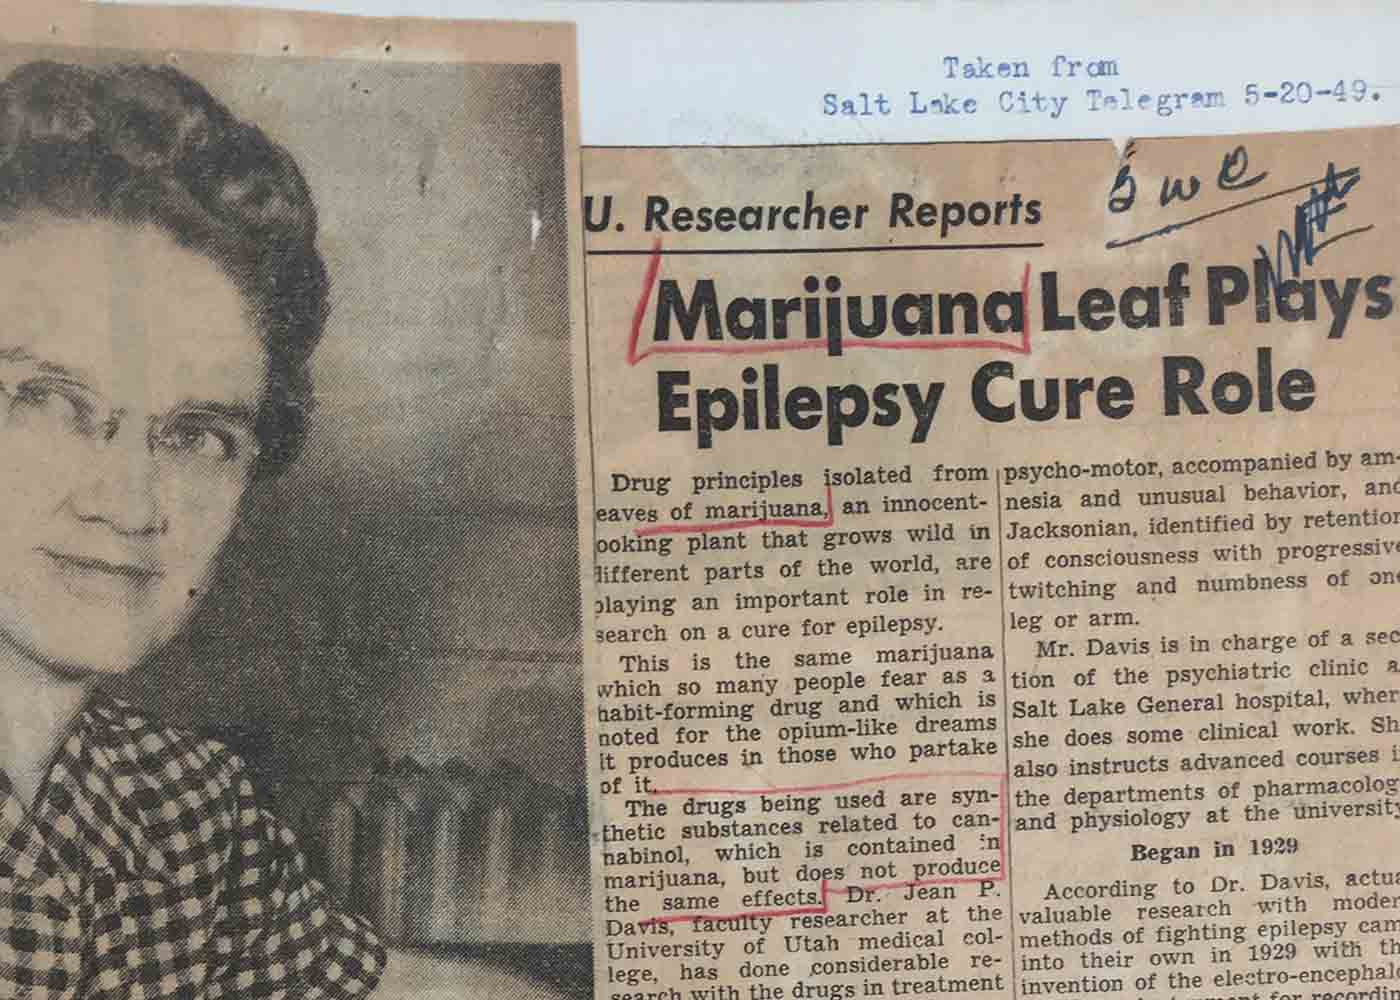 NEARLY CENTURY OLD RESEARCH PROVES CANNABIS' EFFECTIVENESS IN BATTLING EPILEPSY, MIGRAINES, ASTHMA, SPASMS…